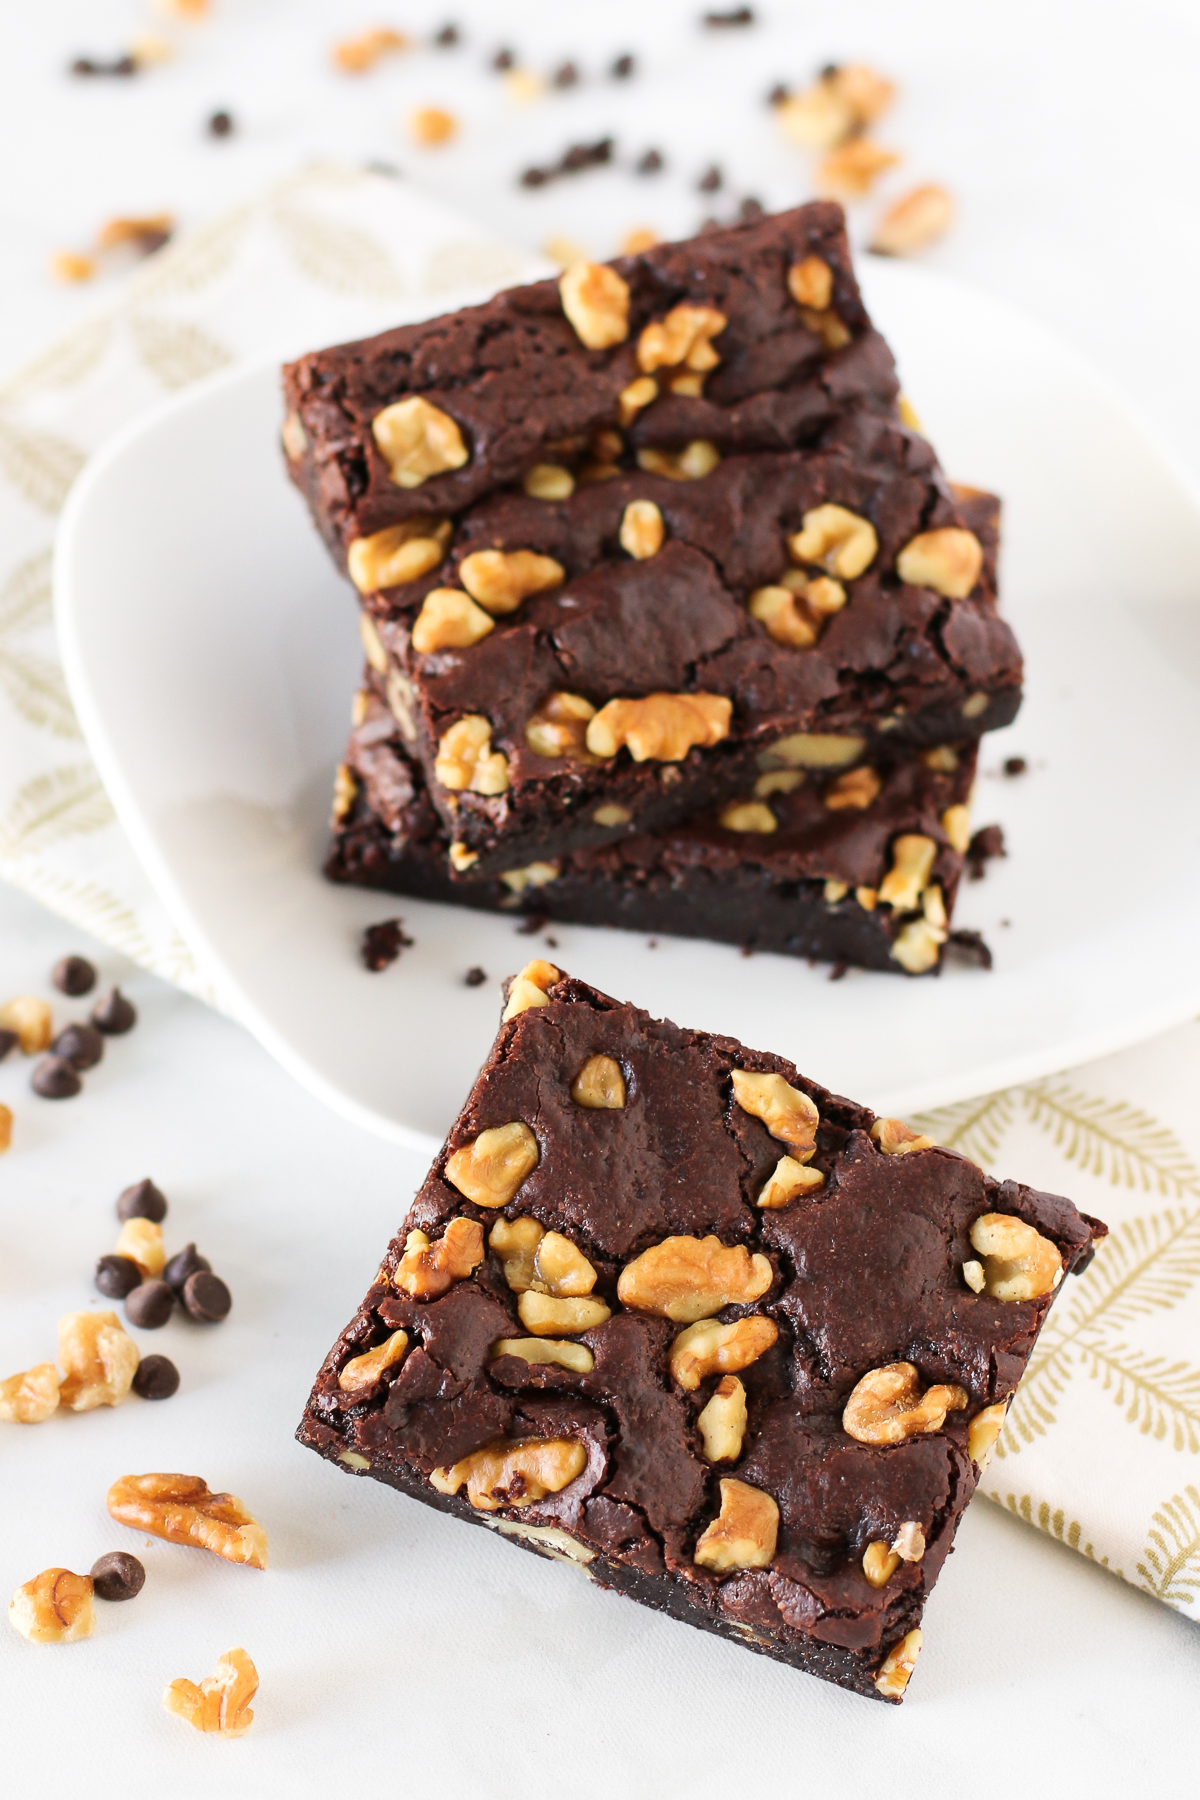 Gluten Free Vegan Walnut Brownies. Fudgy, chewy brownies, loaded with crunchy walnuts. My kind of brownie!